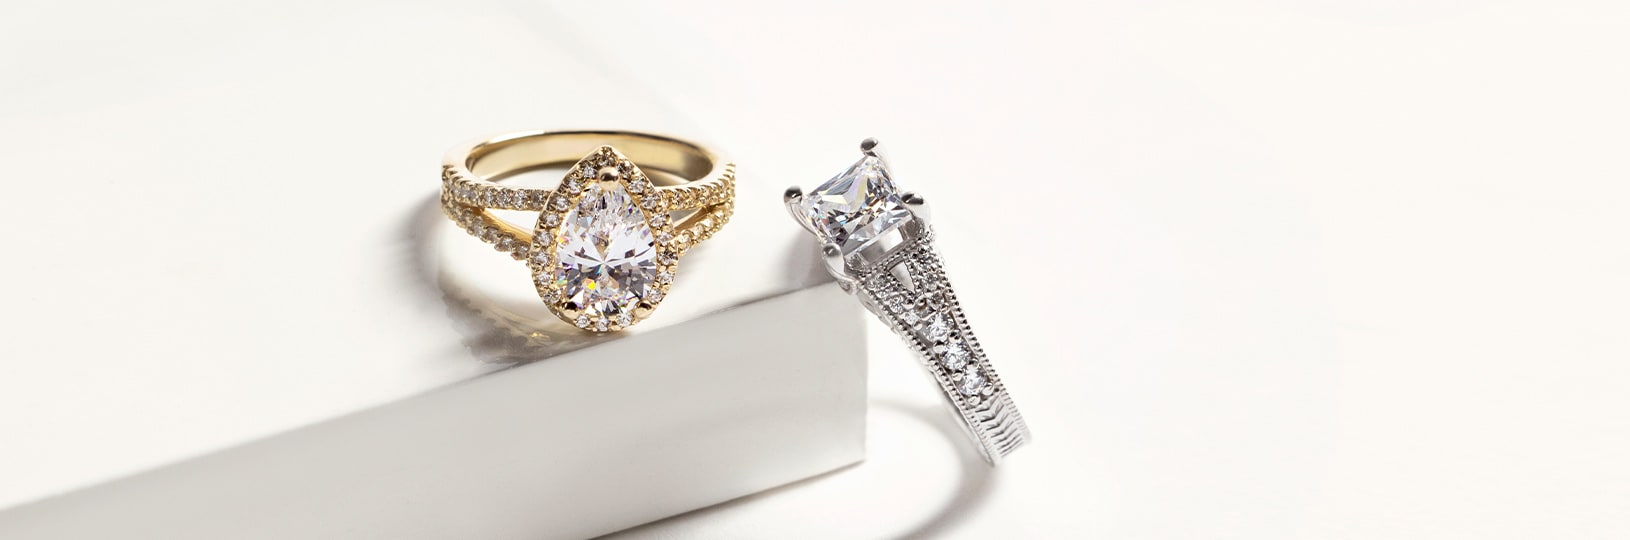 A pear cut yellow gold engagement ring and a princess cut white gold engagement ring pictured together